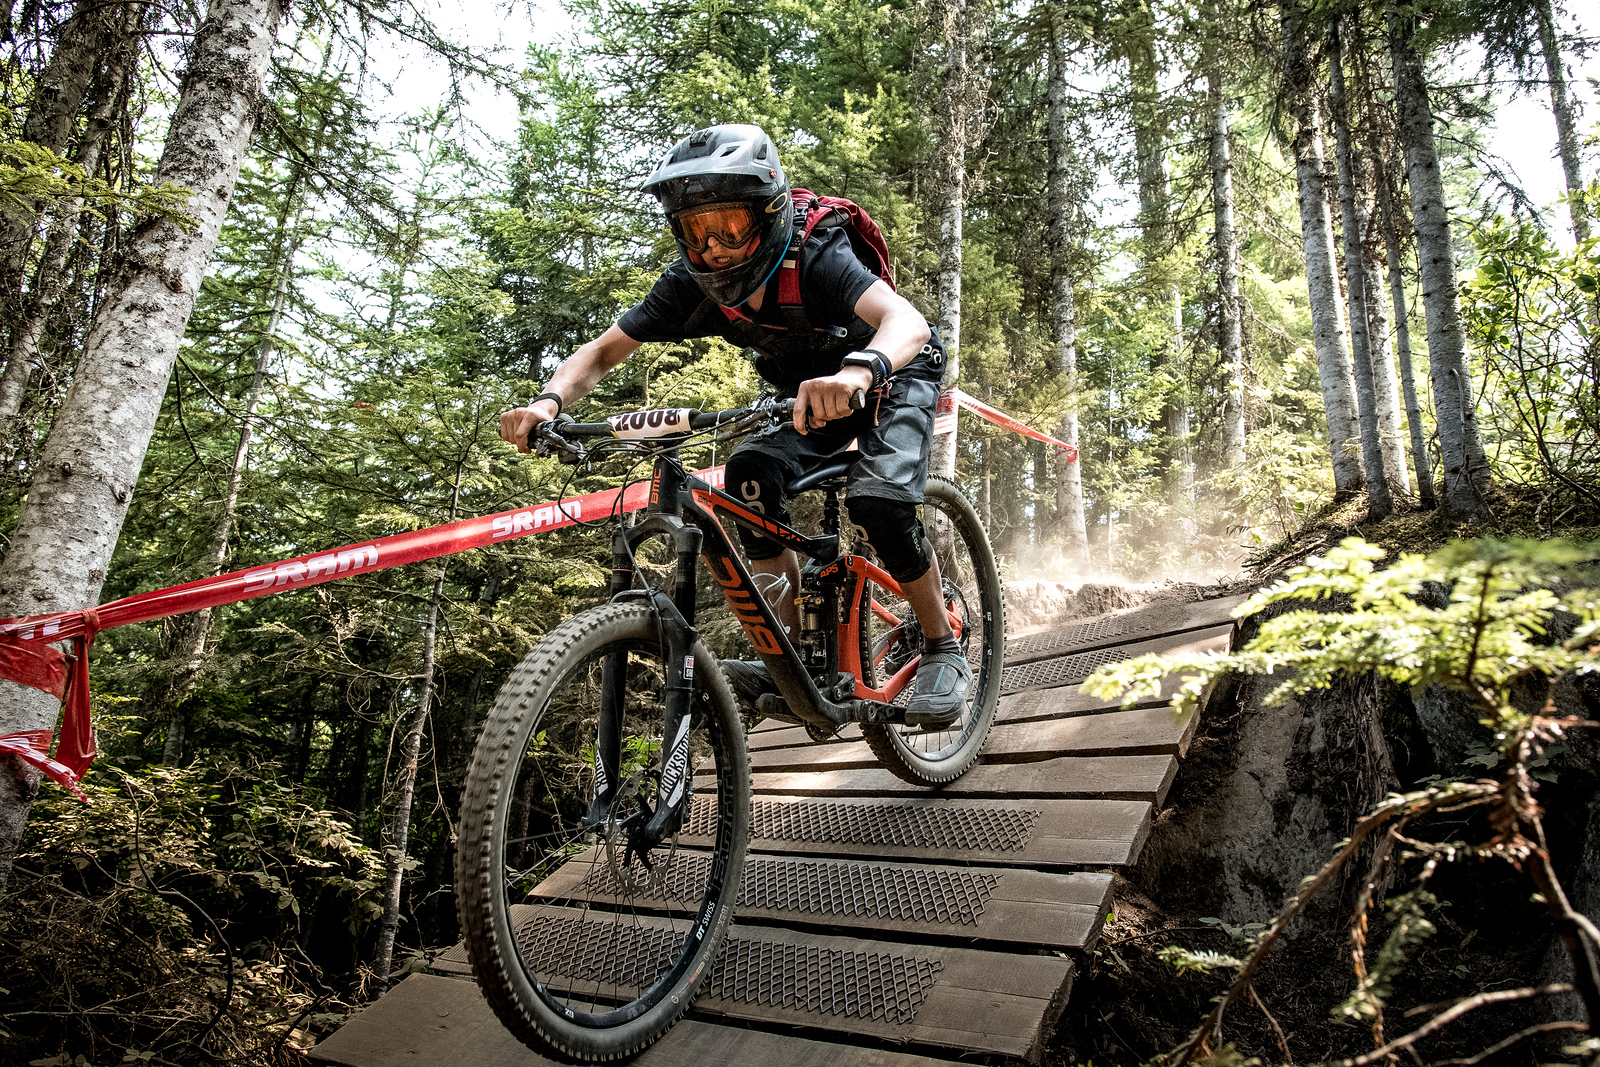 Jack Charlton. Bell Helmets Canadian Open Challenger Enduro presented by CamelBak. Crankworx Whistler 2017. Photo by: Scott Robarts